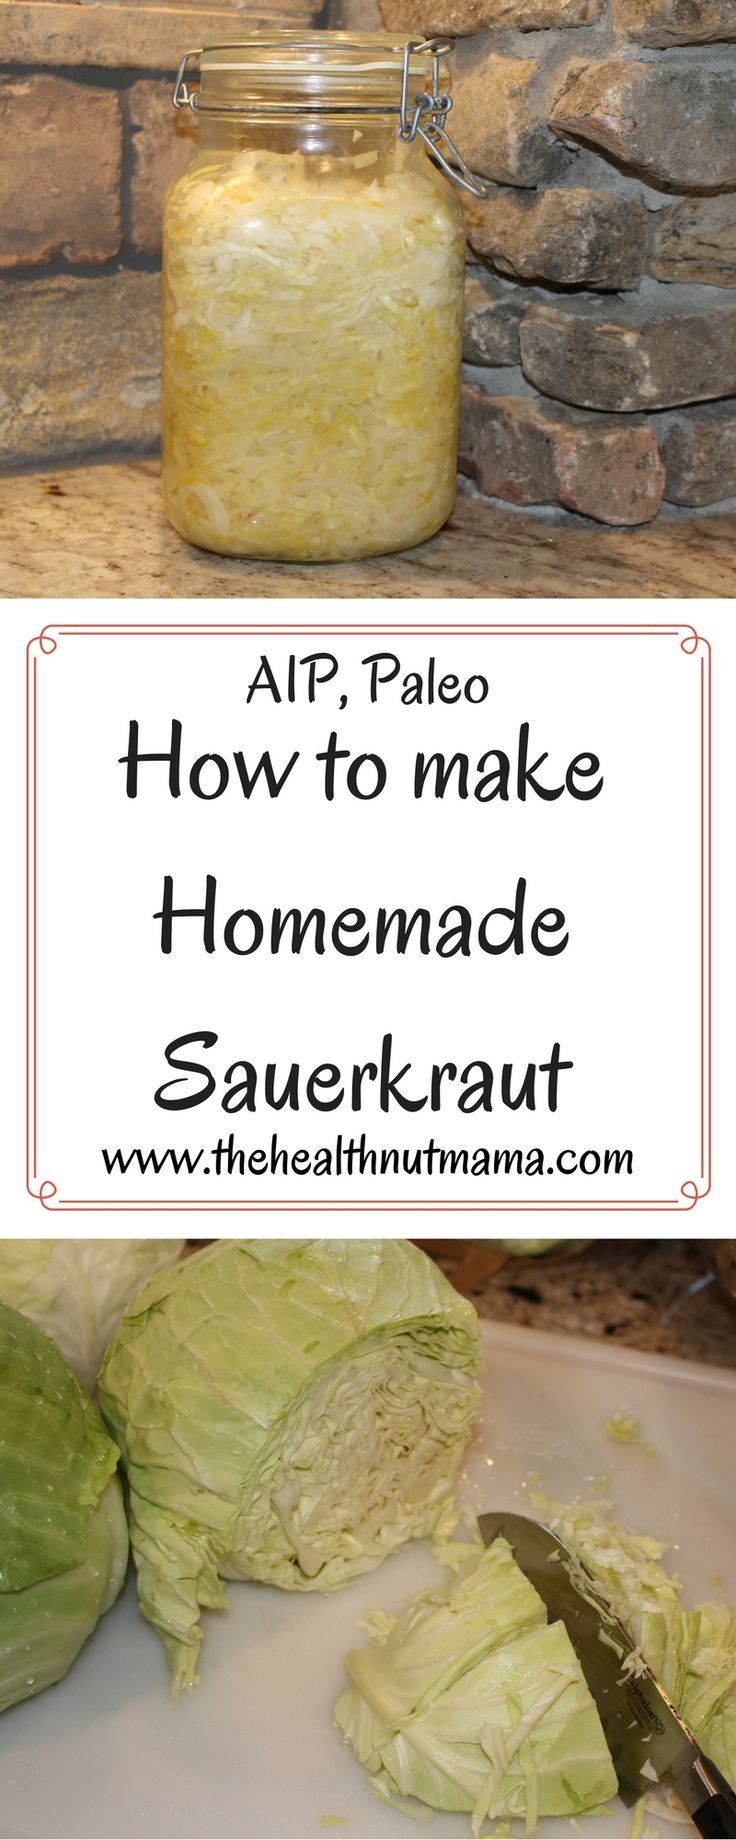 Easy No Pound Sauerkraut Recipe! Best, Cheapest Probiotic Ever! (AIP, Paleo, GAPS) www.thehealthnutmama.com